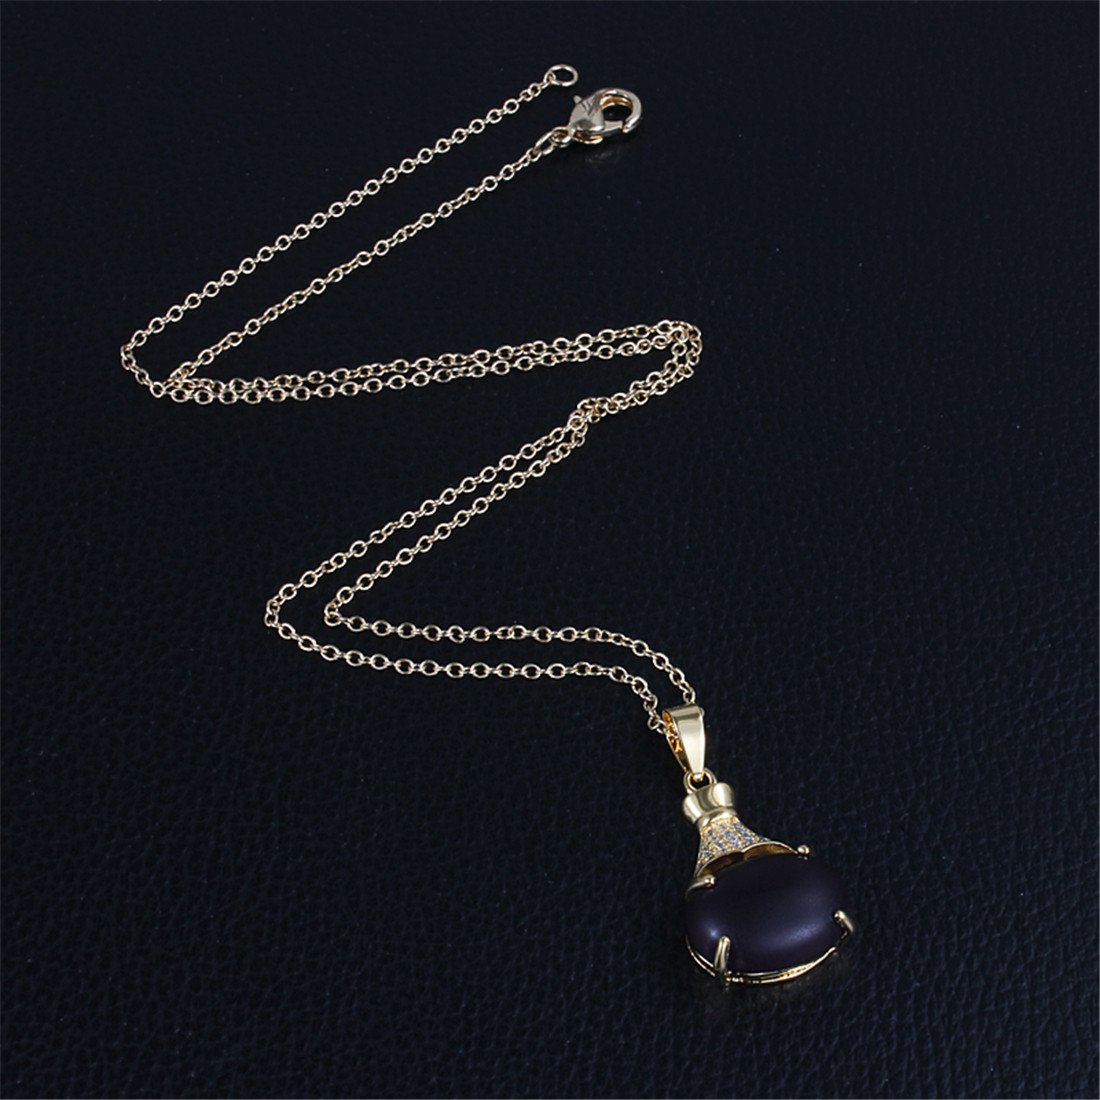 Simulated Purple Opal Charm Necklace Available in Yellow or White Gold Plated